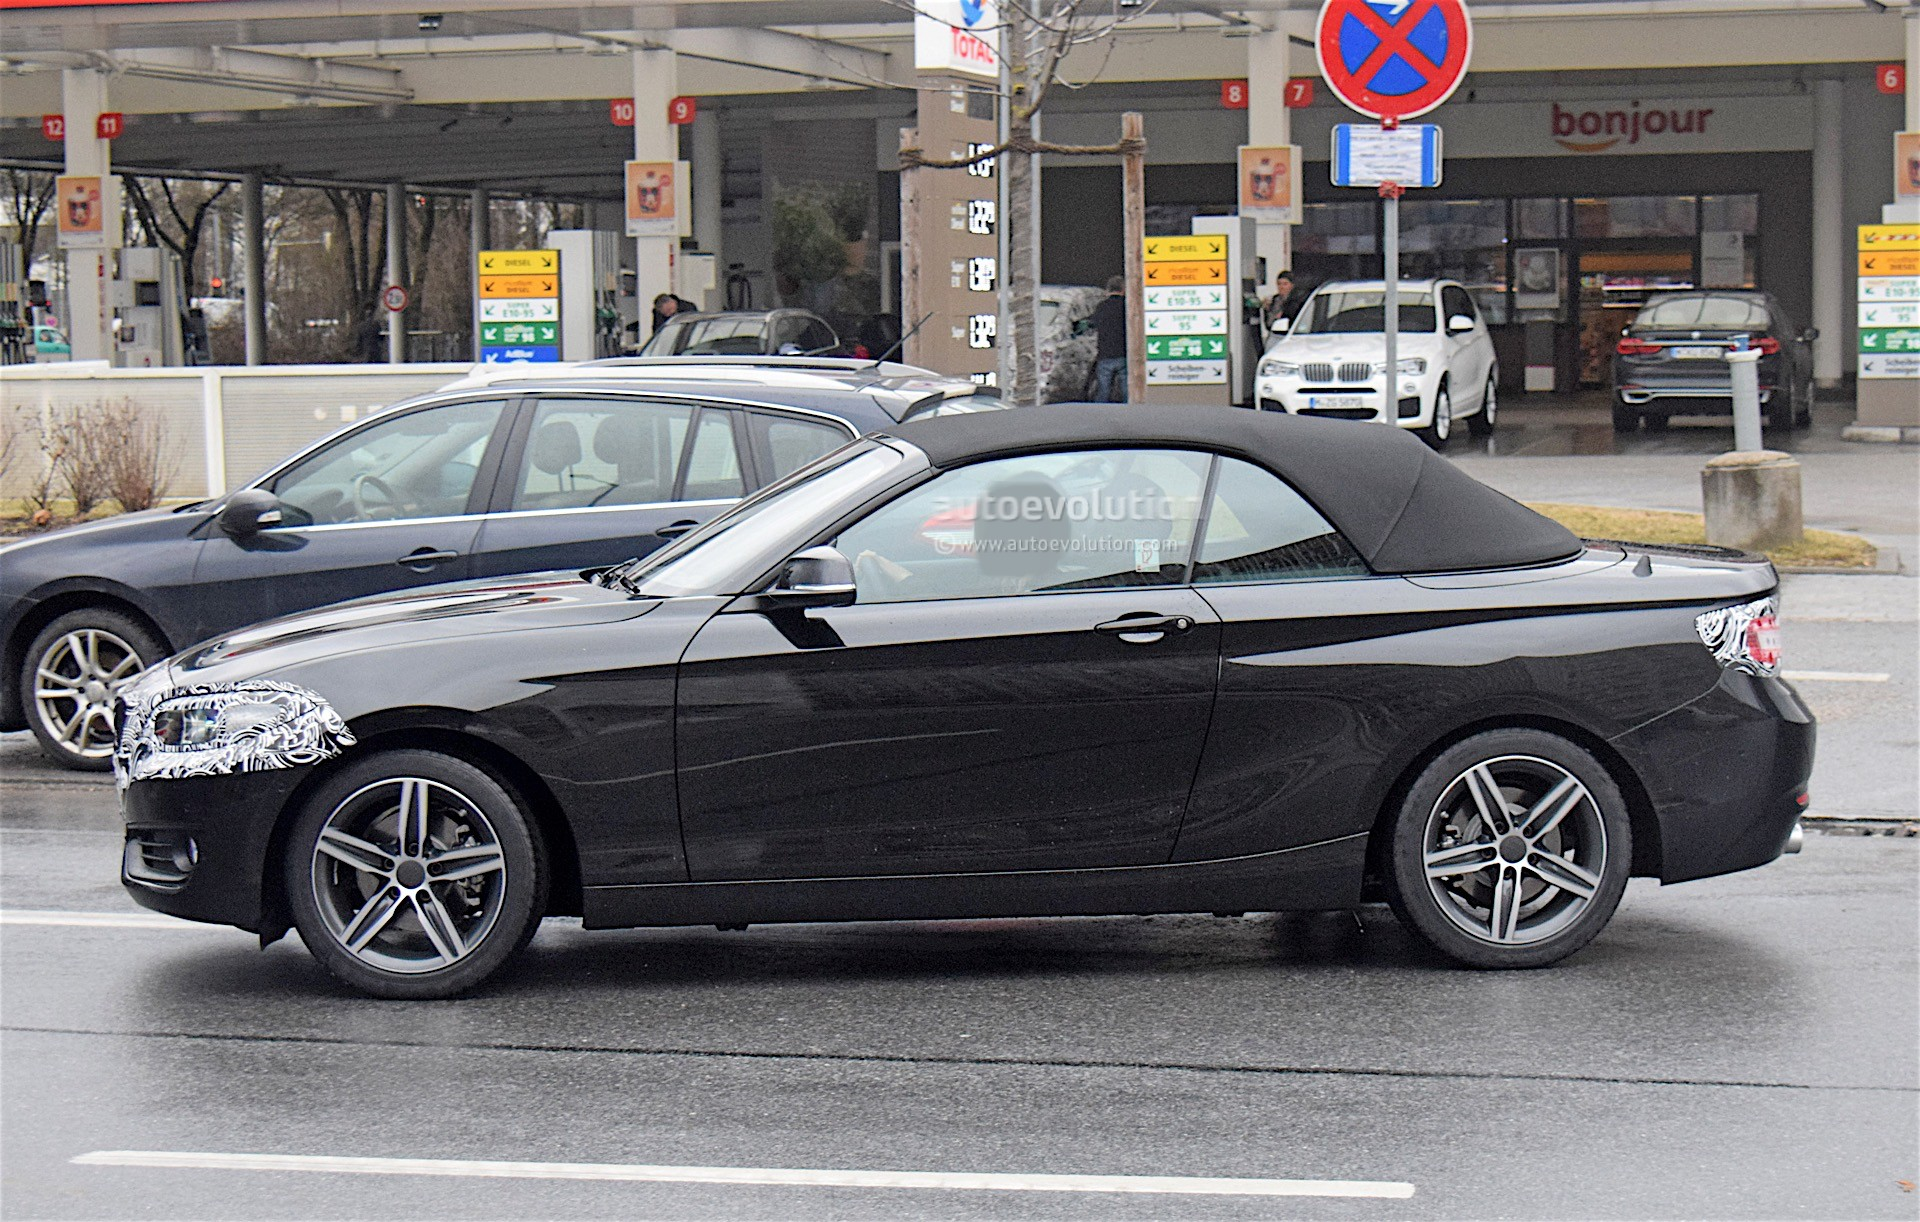 2019 Bmw 2 Series Convertible Spied Testing With Light Camo